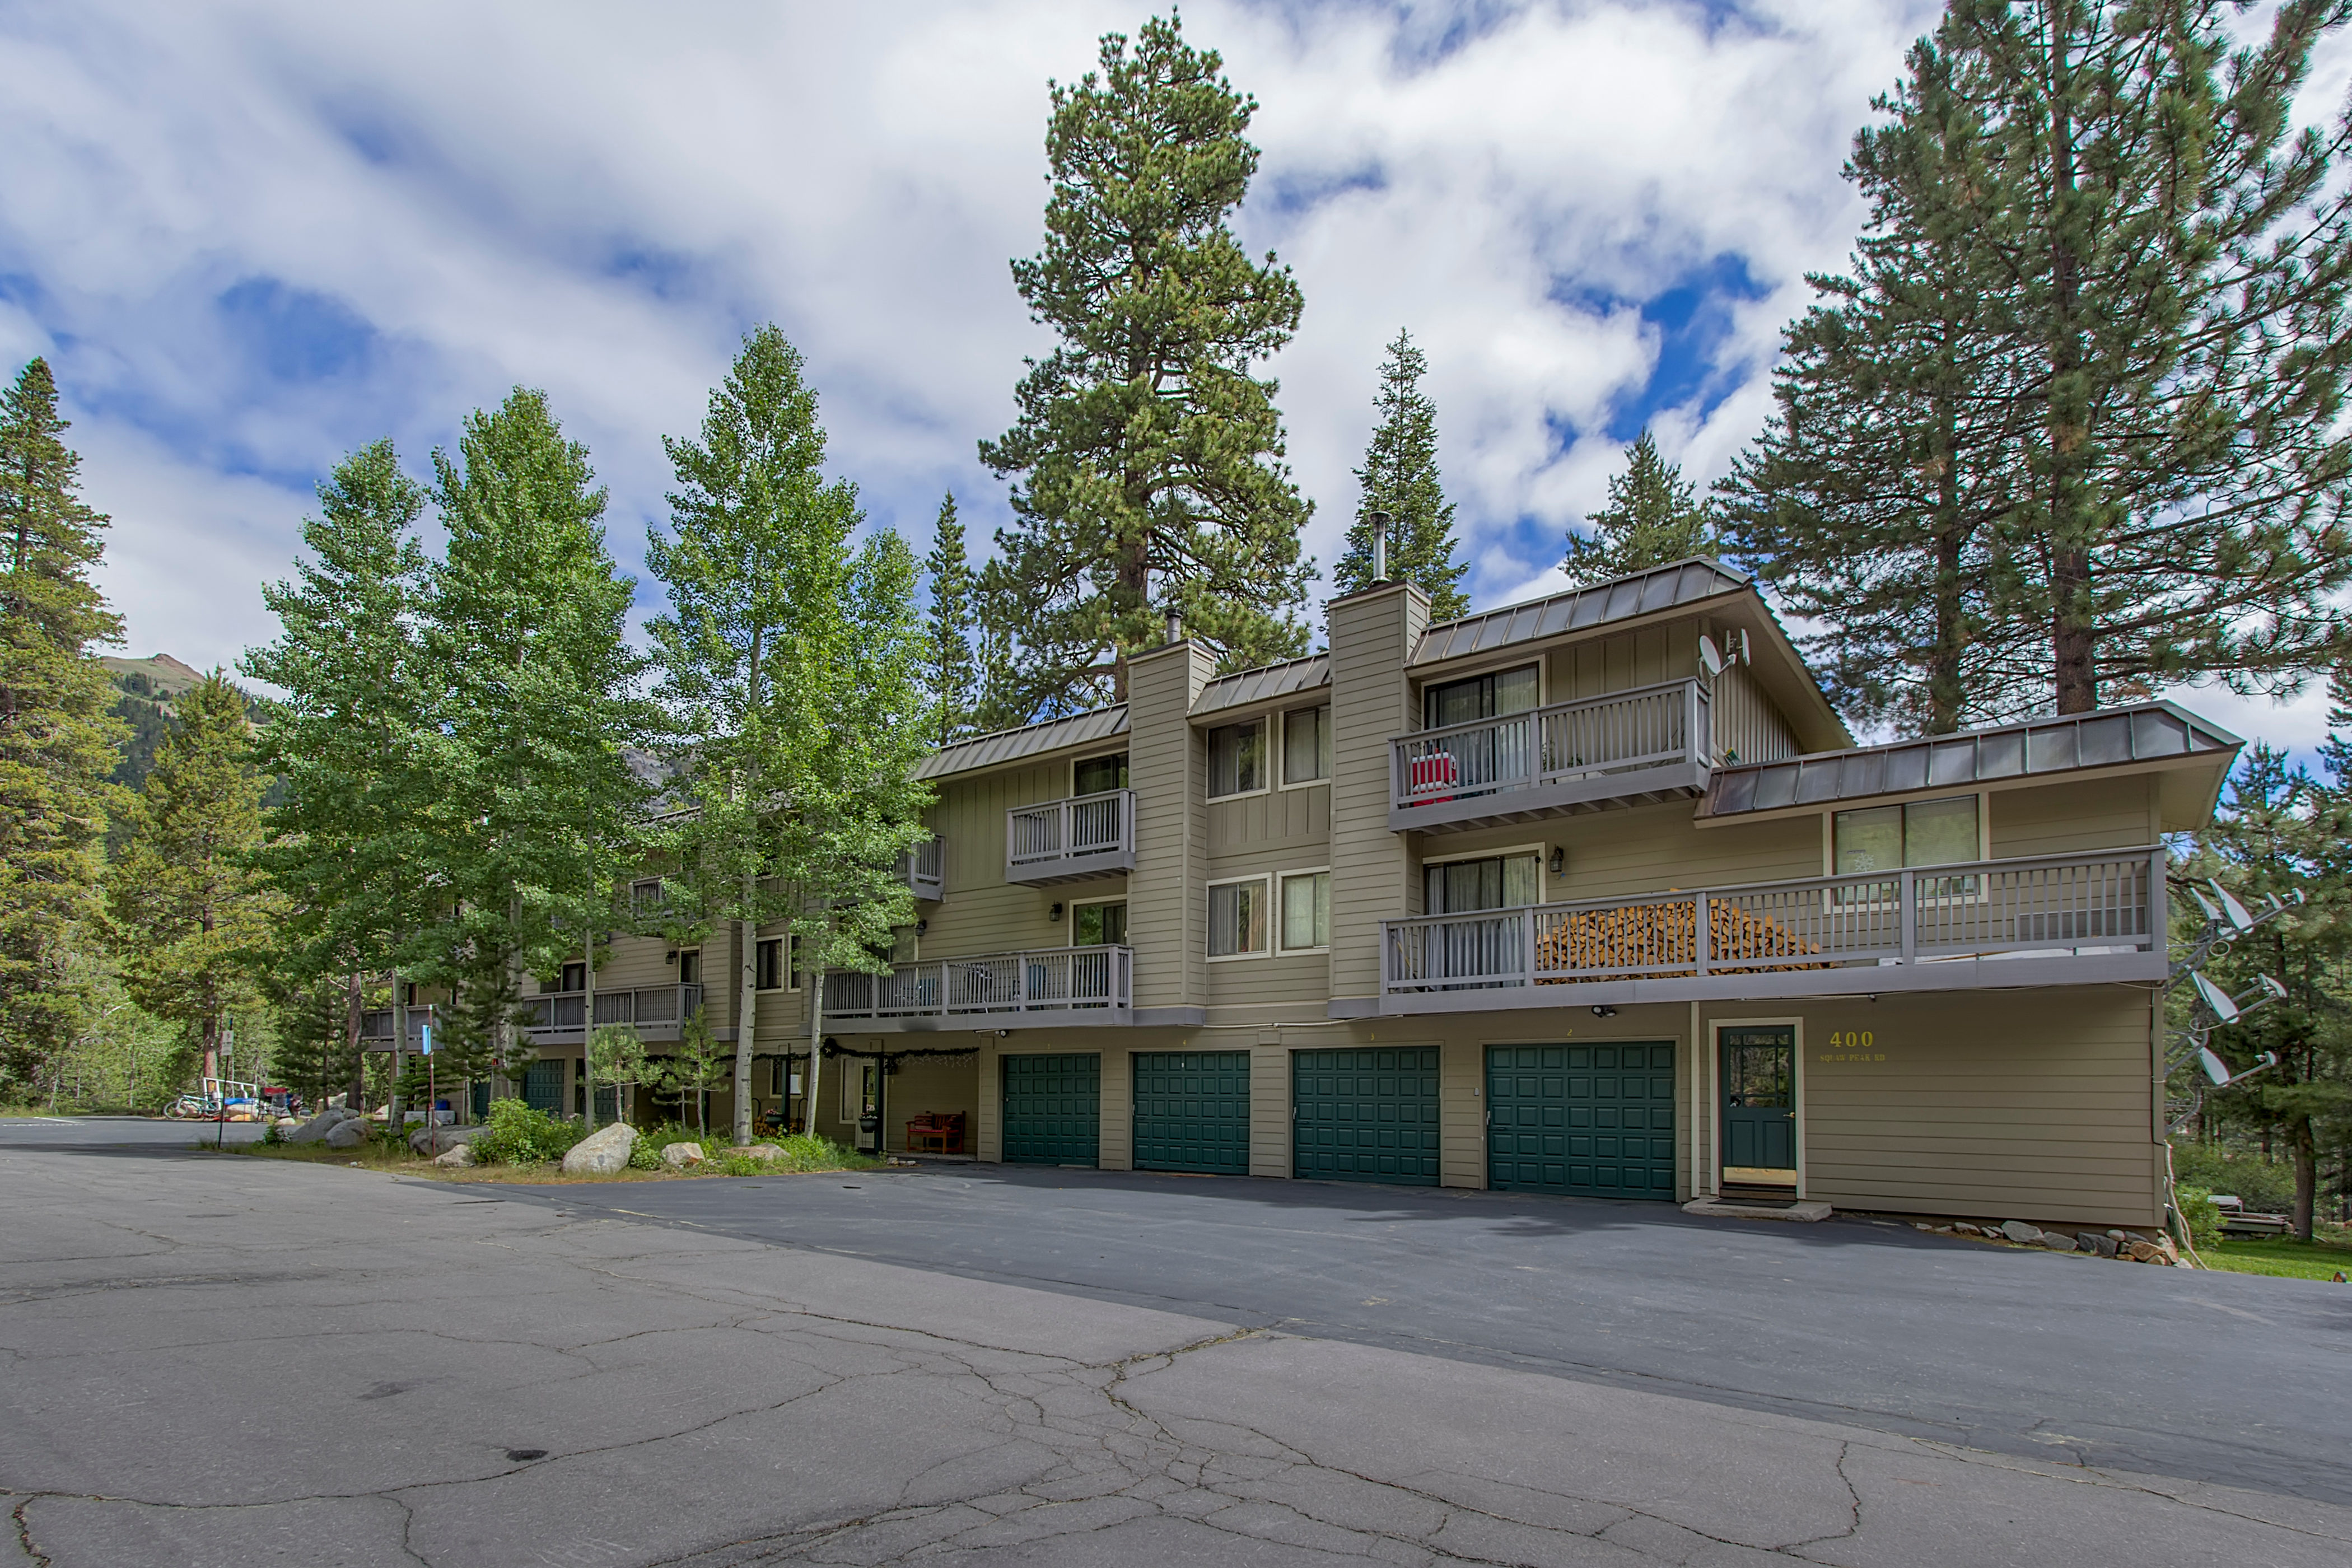 Property For Sale at 400 Squaw Peak Road #1